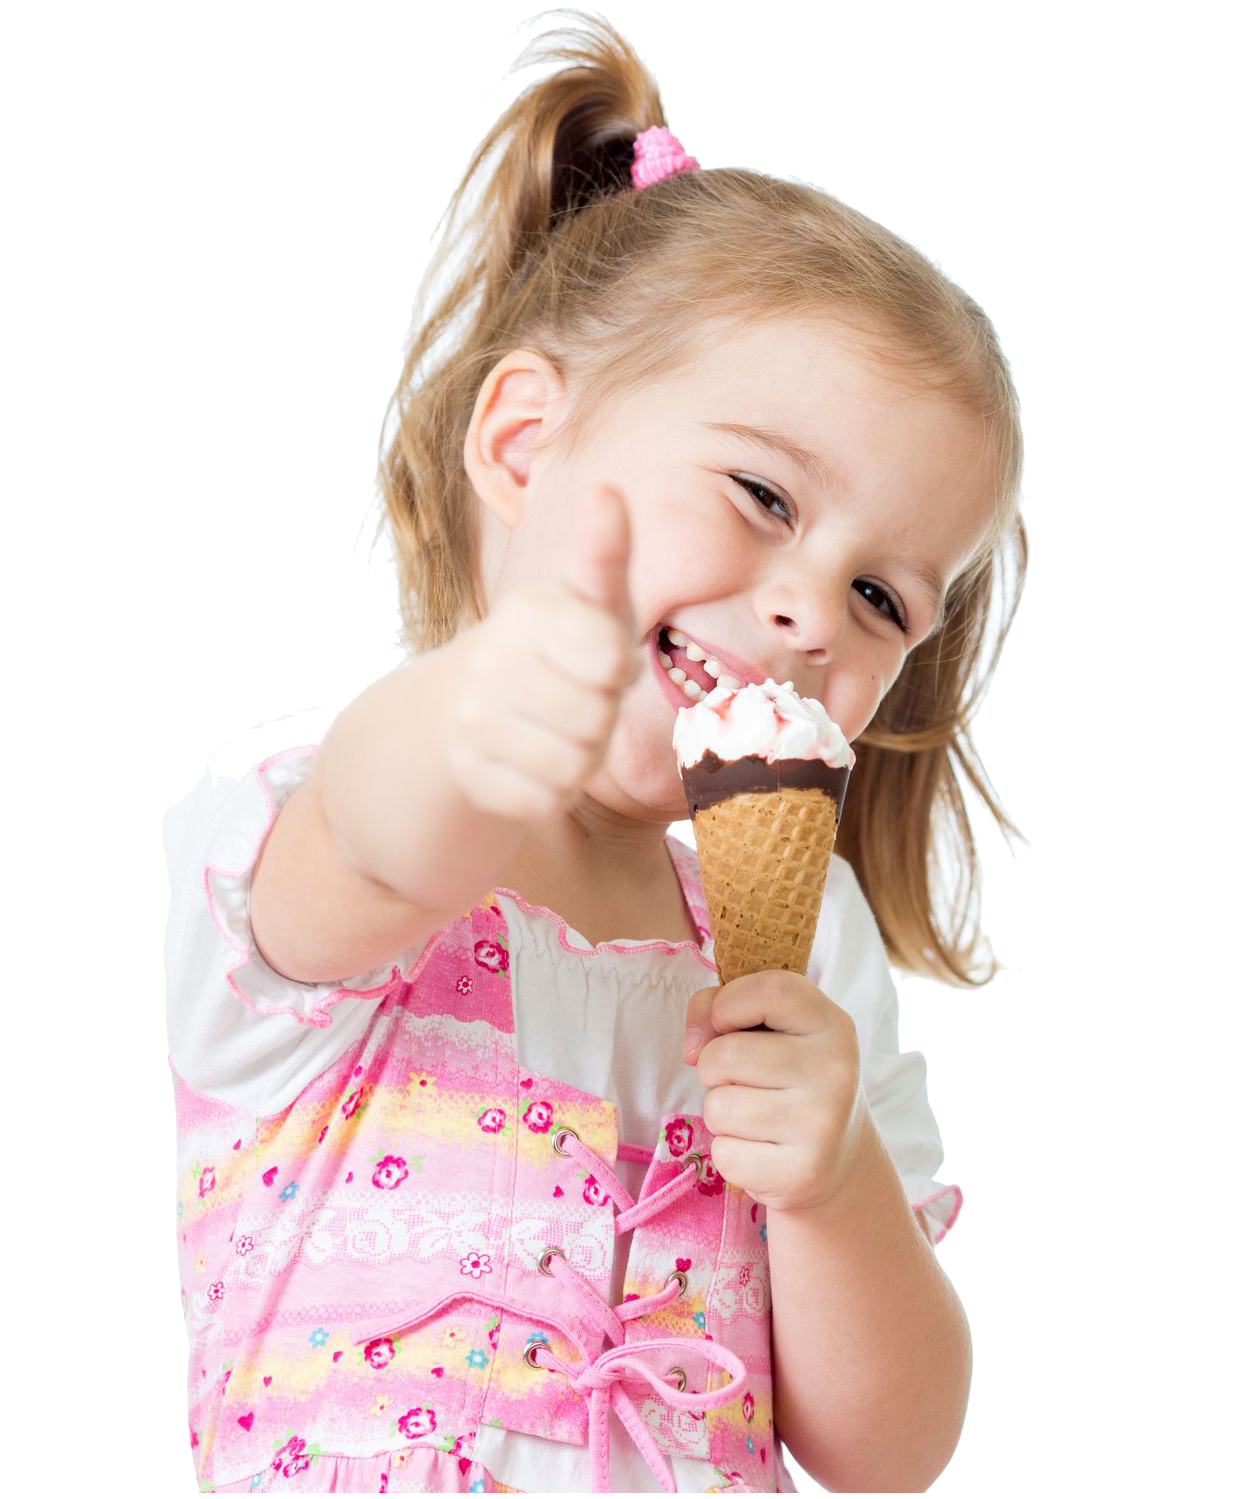 Congratulate, this Girl covered in ice cream